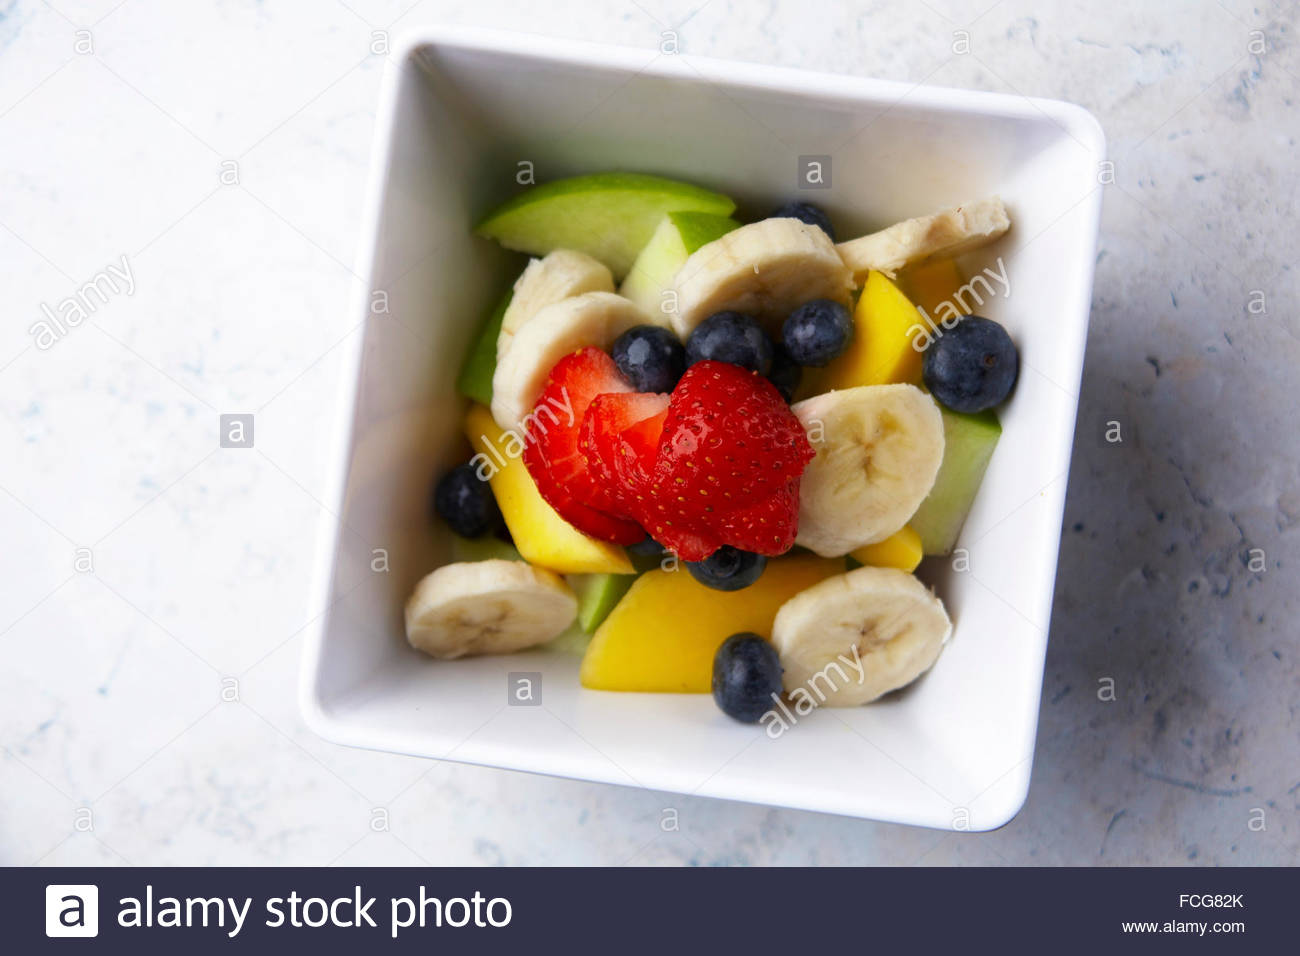 Obstsalat Stockbild